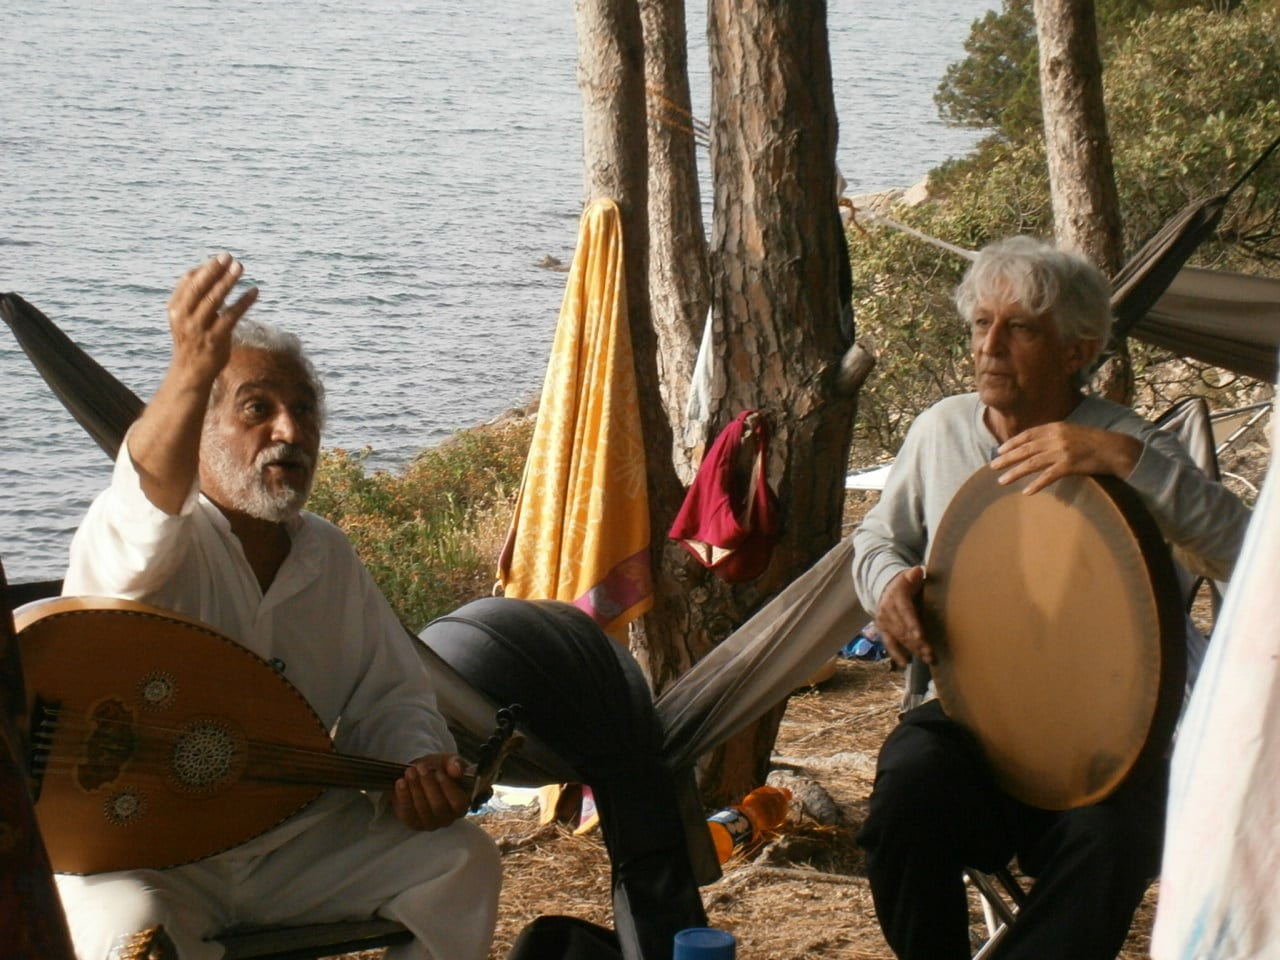 Events Sufi Earth Spirit Inayati center for meditation and spiritual ecologySardinia - with great Sufi musicians AHURA at the seaside